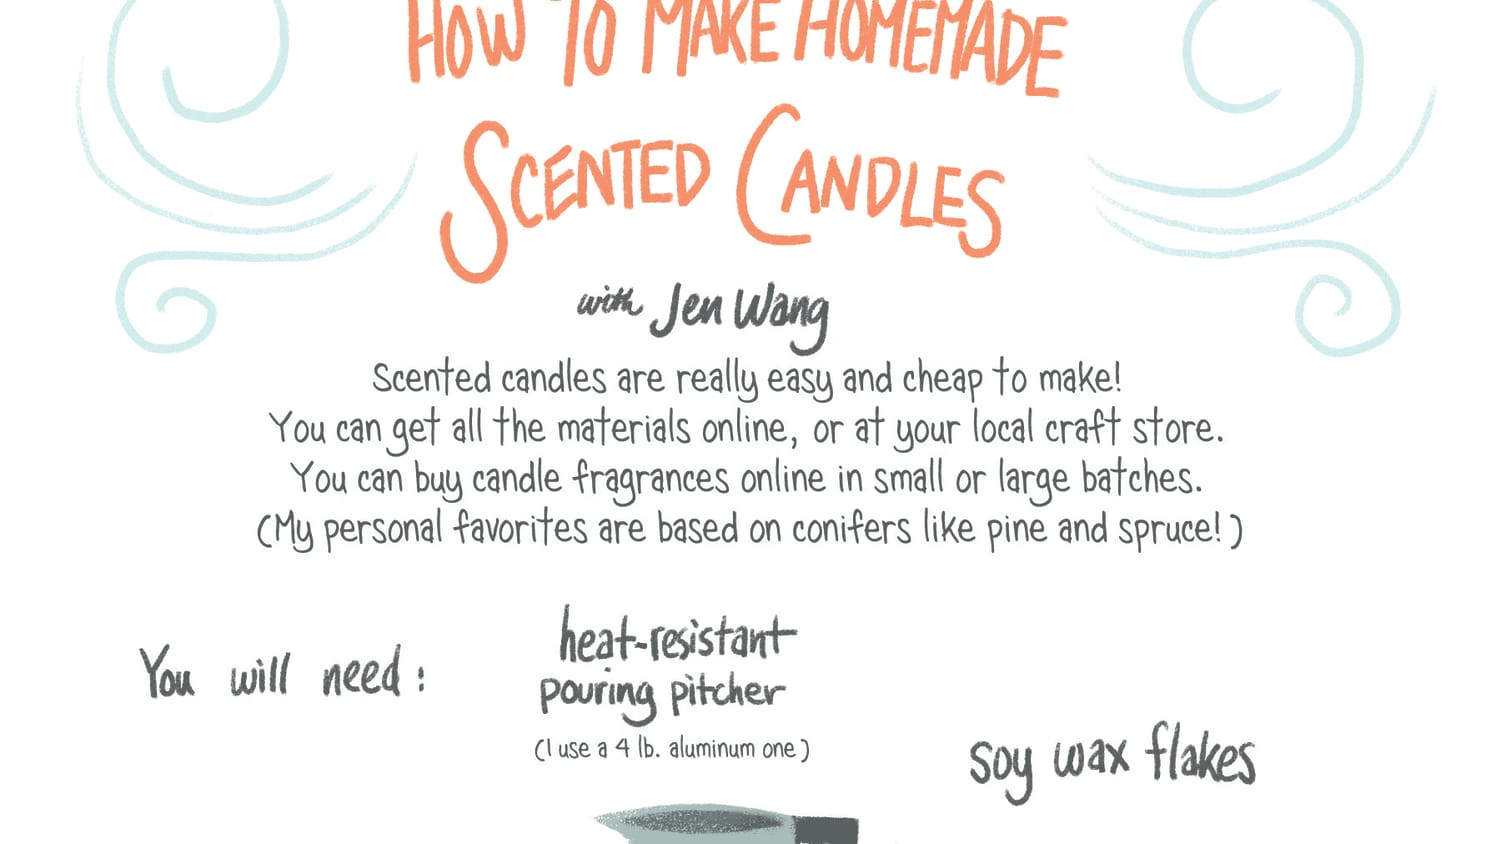 How To Make Homemade Scented Candles Apartment Therapy